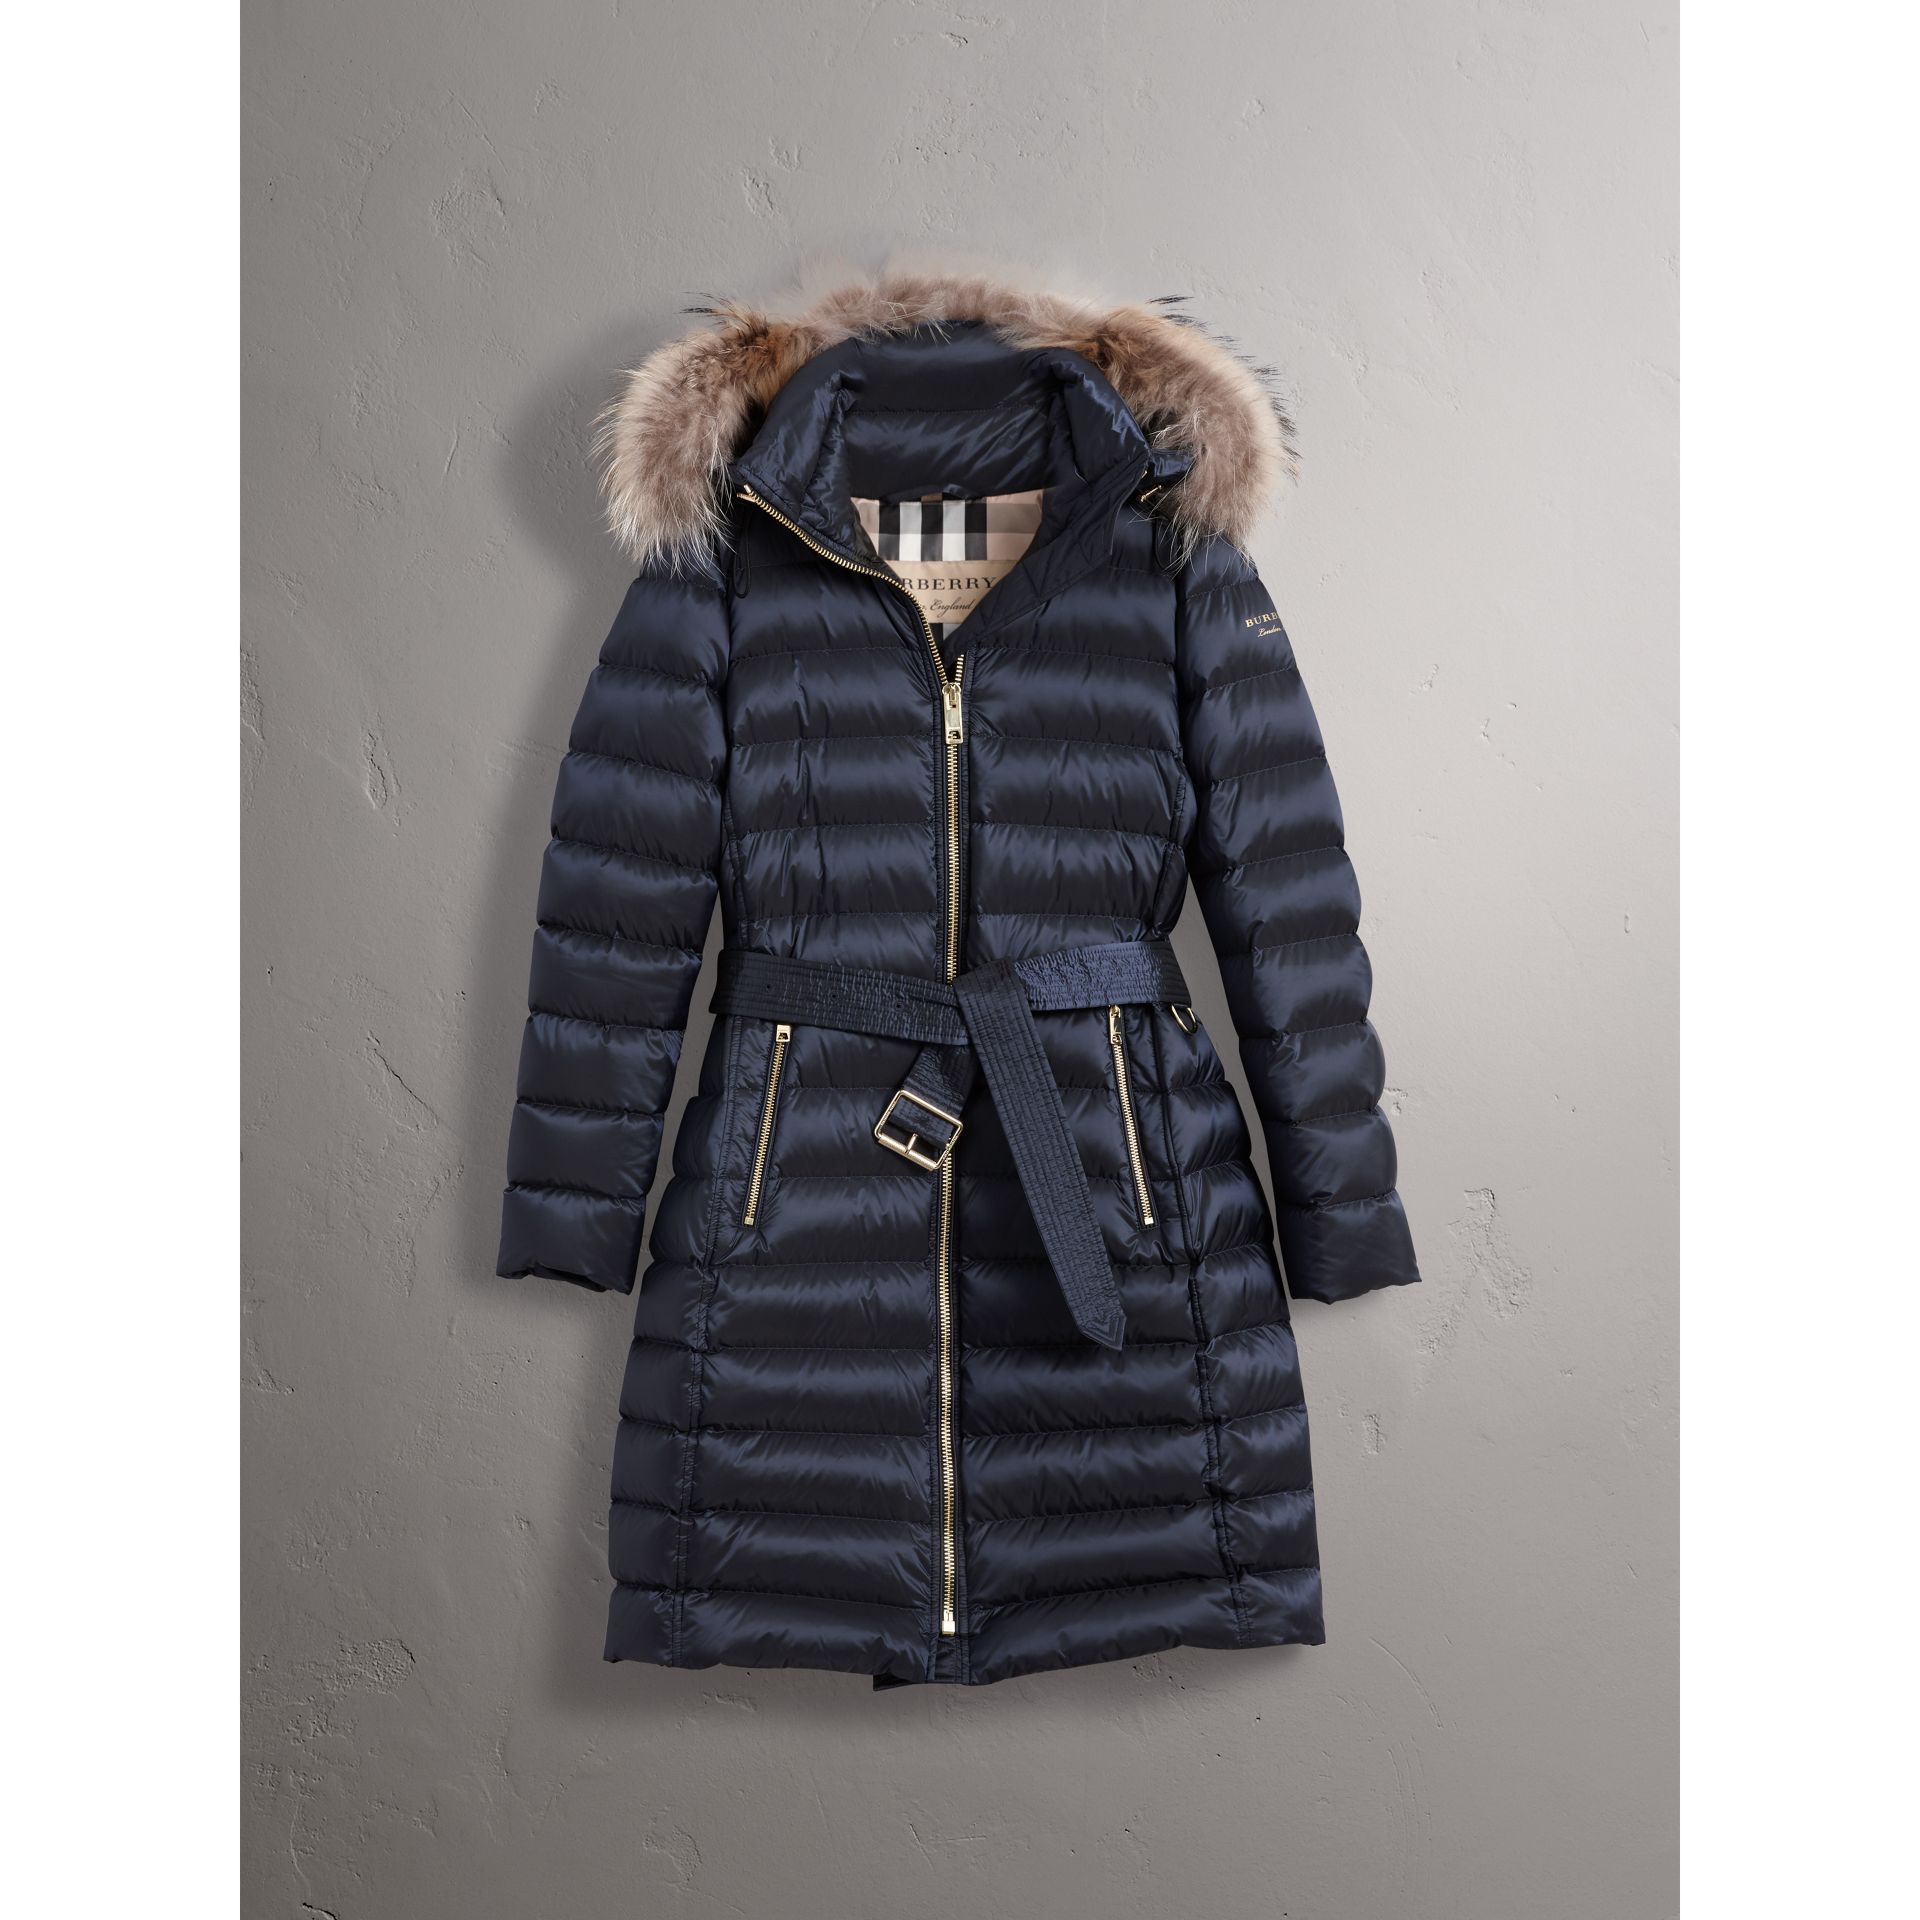 Detachable Fur Trim Down-filled Puffer Coat with Hood in Navy - Women | Burberry Canada - gallery image 3